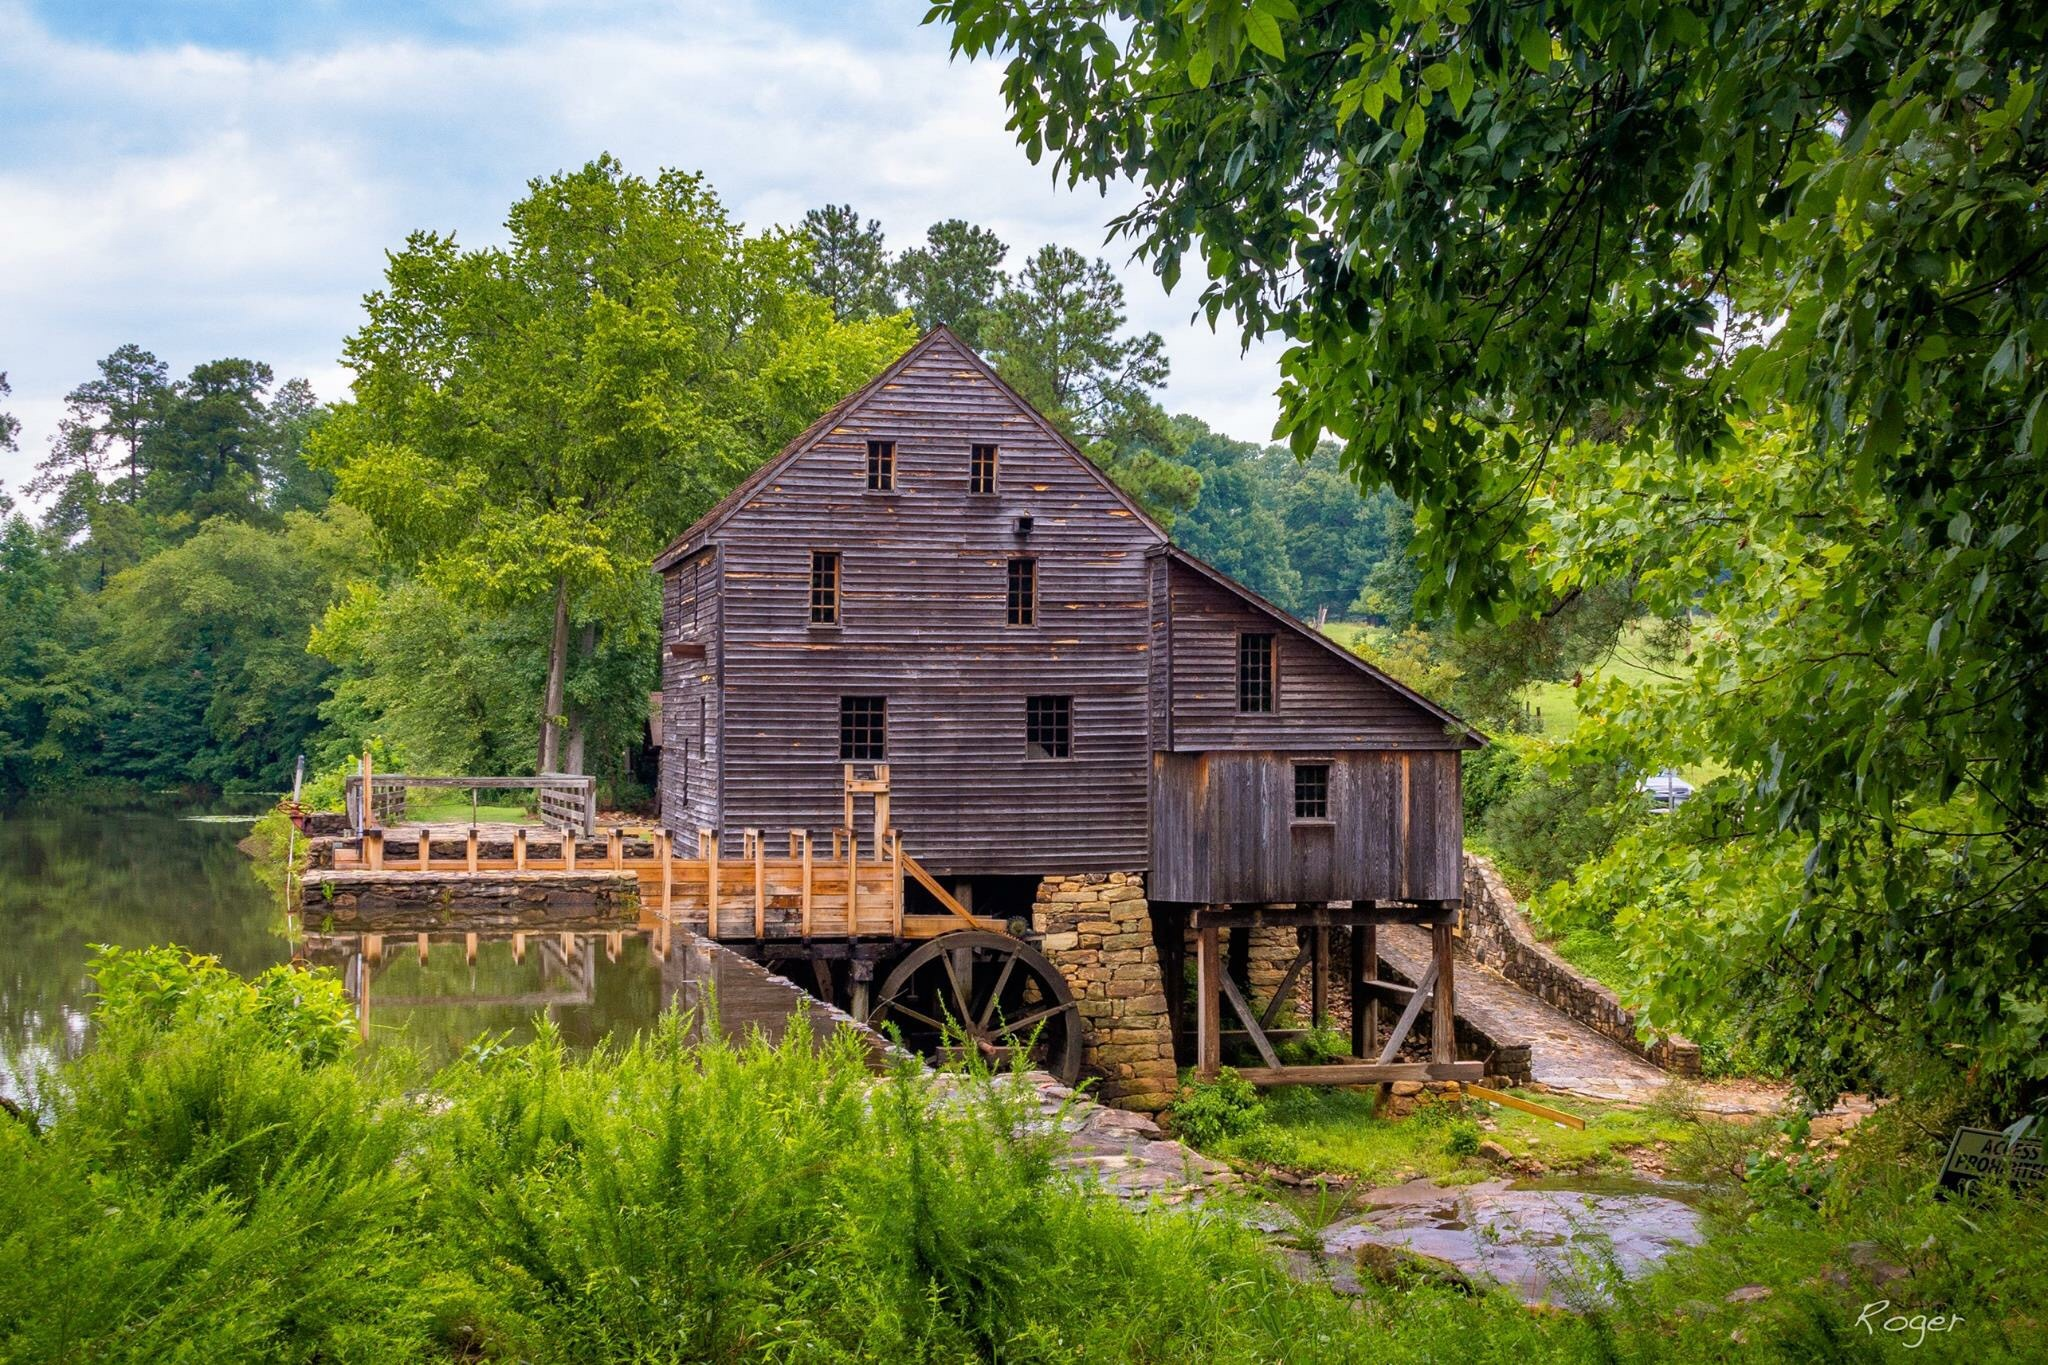 Yates Mill by rogeryounce